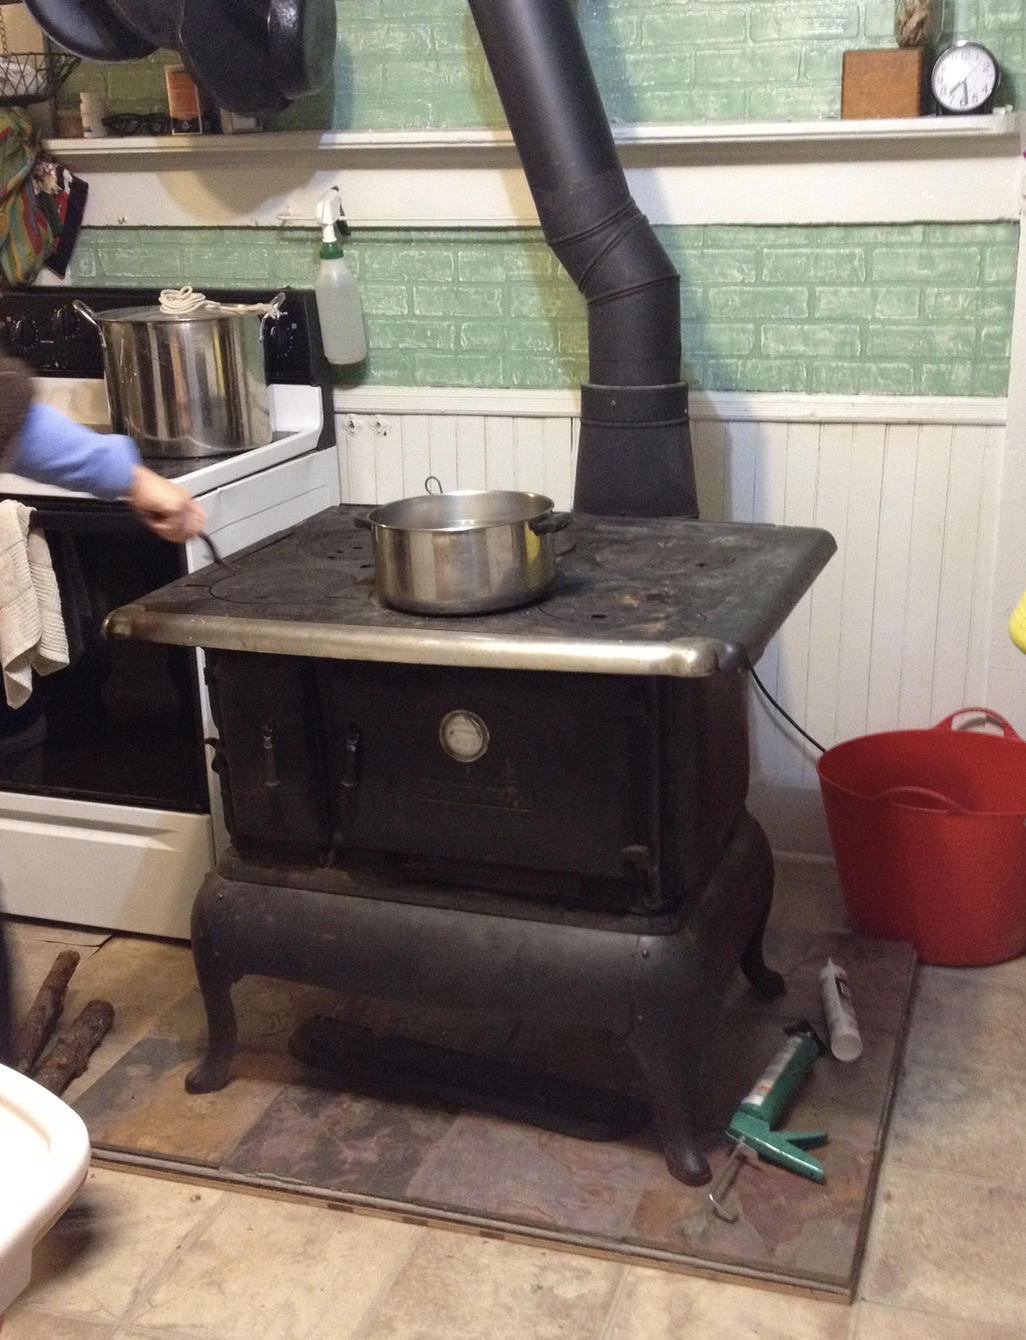 Maddrey actually cooked an entire Thanksgiving dinner on this stove